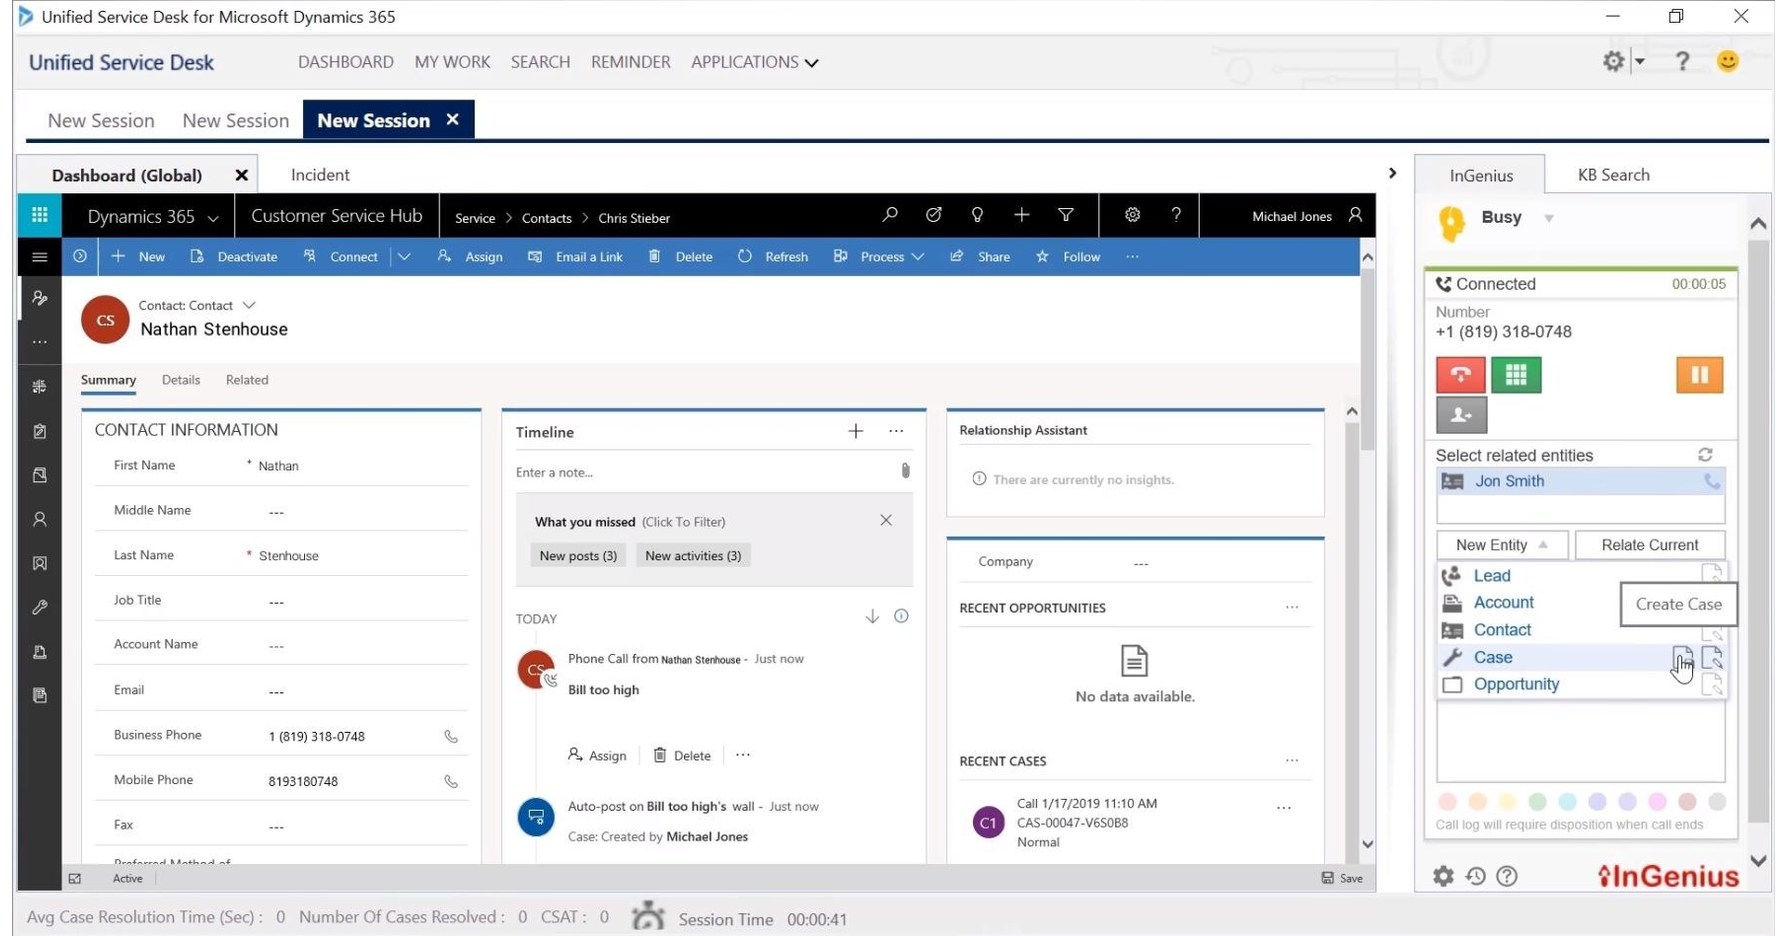 InGenius Software Announces Integration with Unified Service Desk